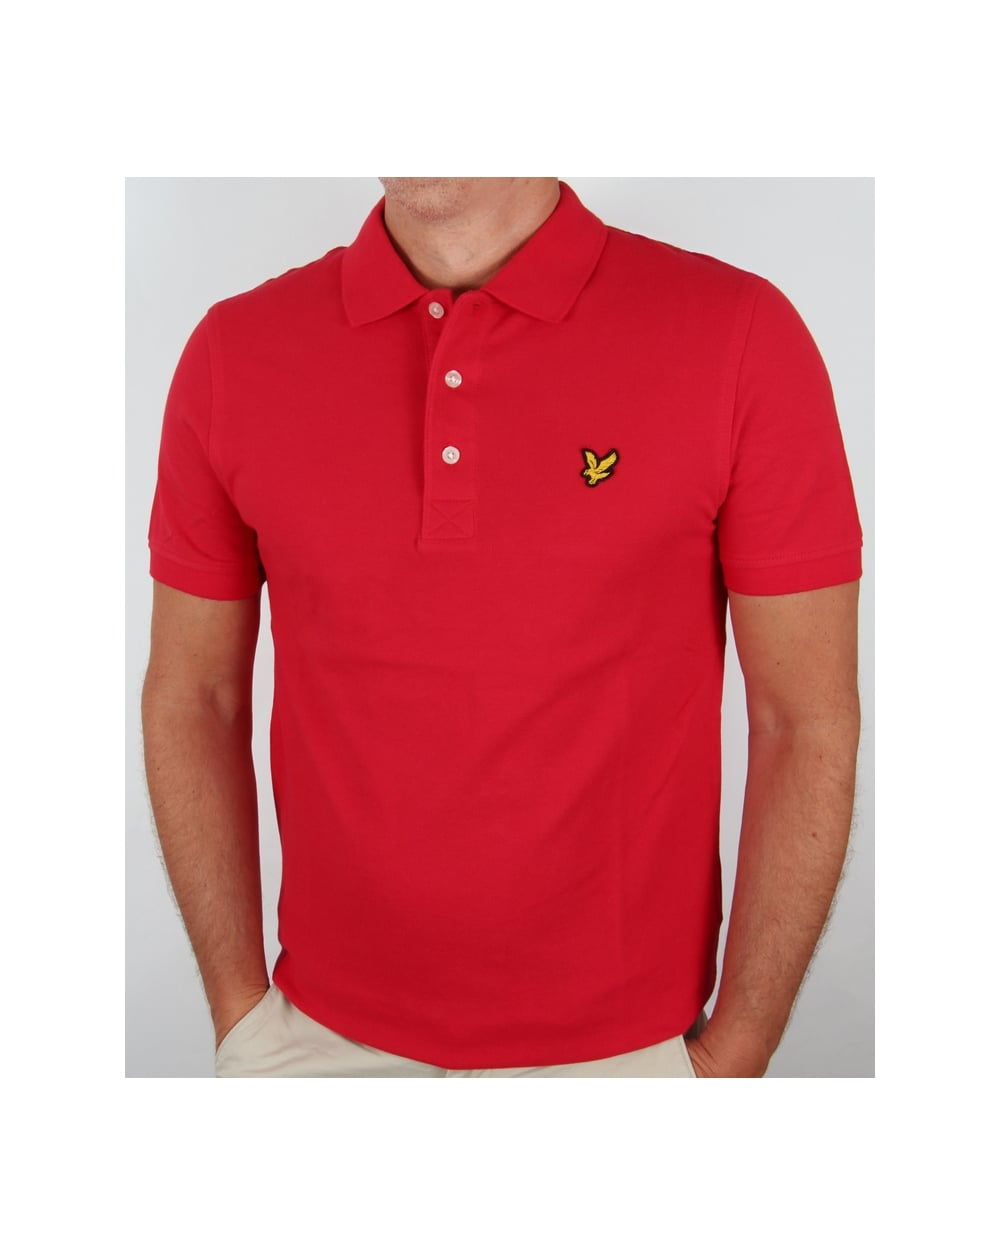 lyle and scott polo shirt s s red lyle scott polo shirt. Black Bedroom Furniture Sets. Home Design Ideas